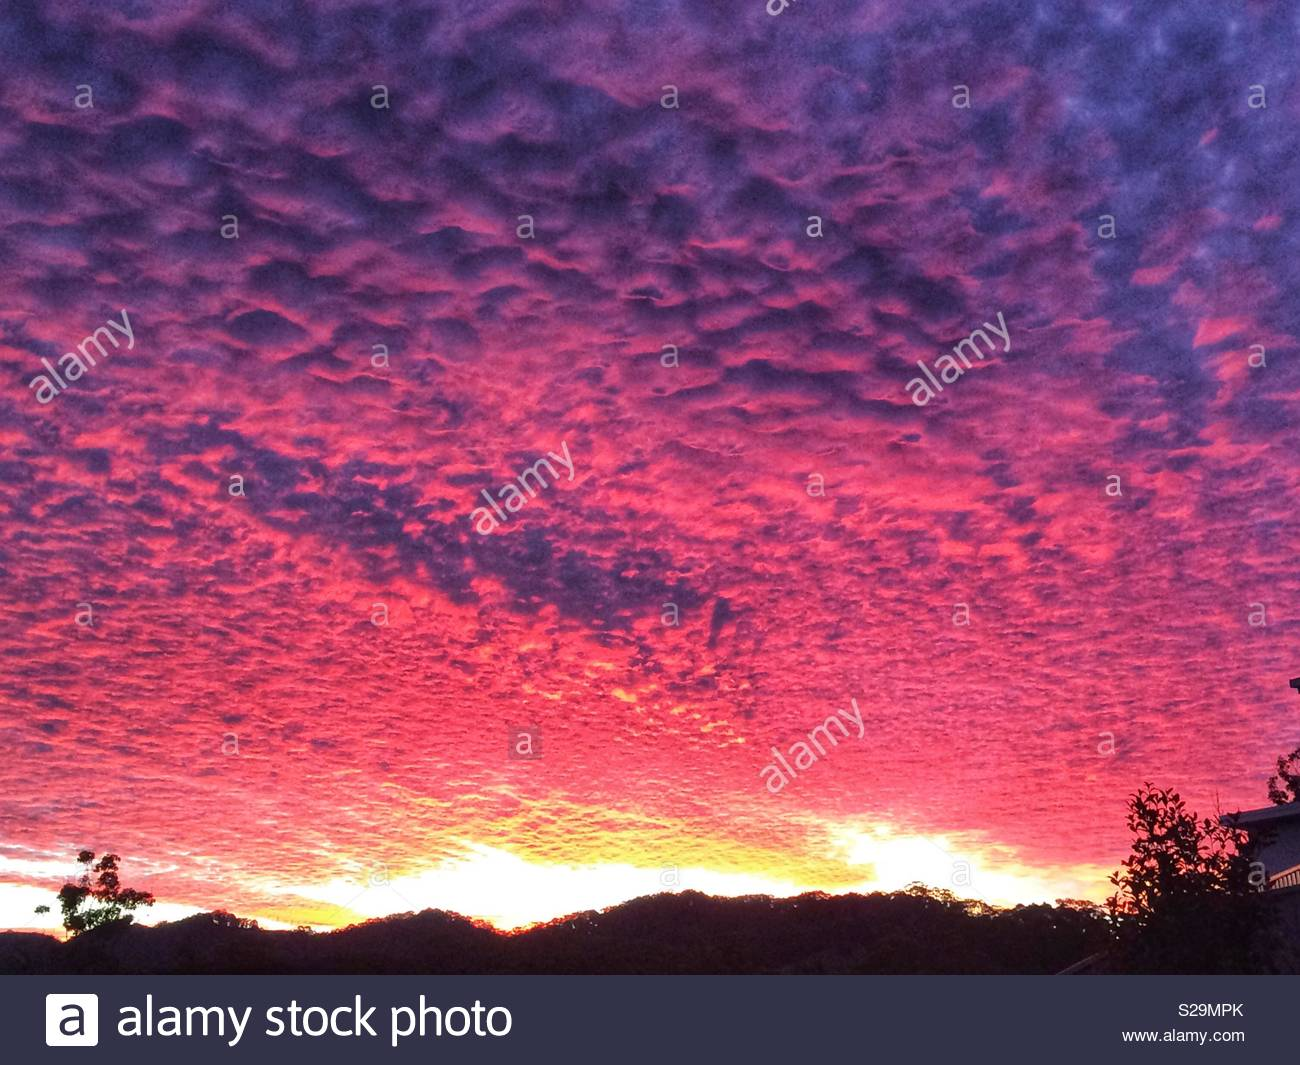 A sea of Glorious bright pink and purple clouds at sunset in Australia - Stock Image